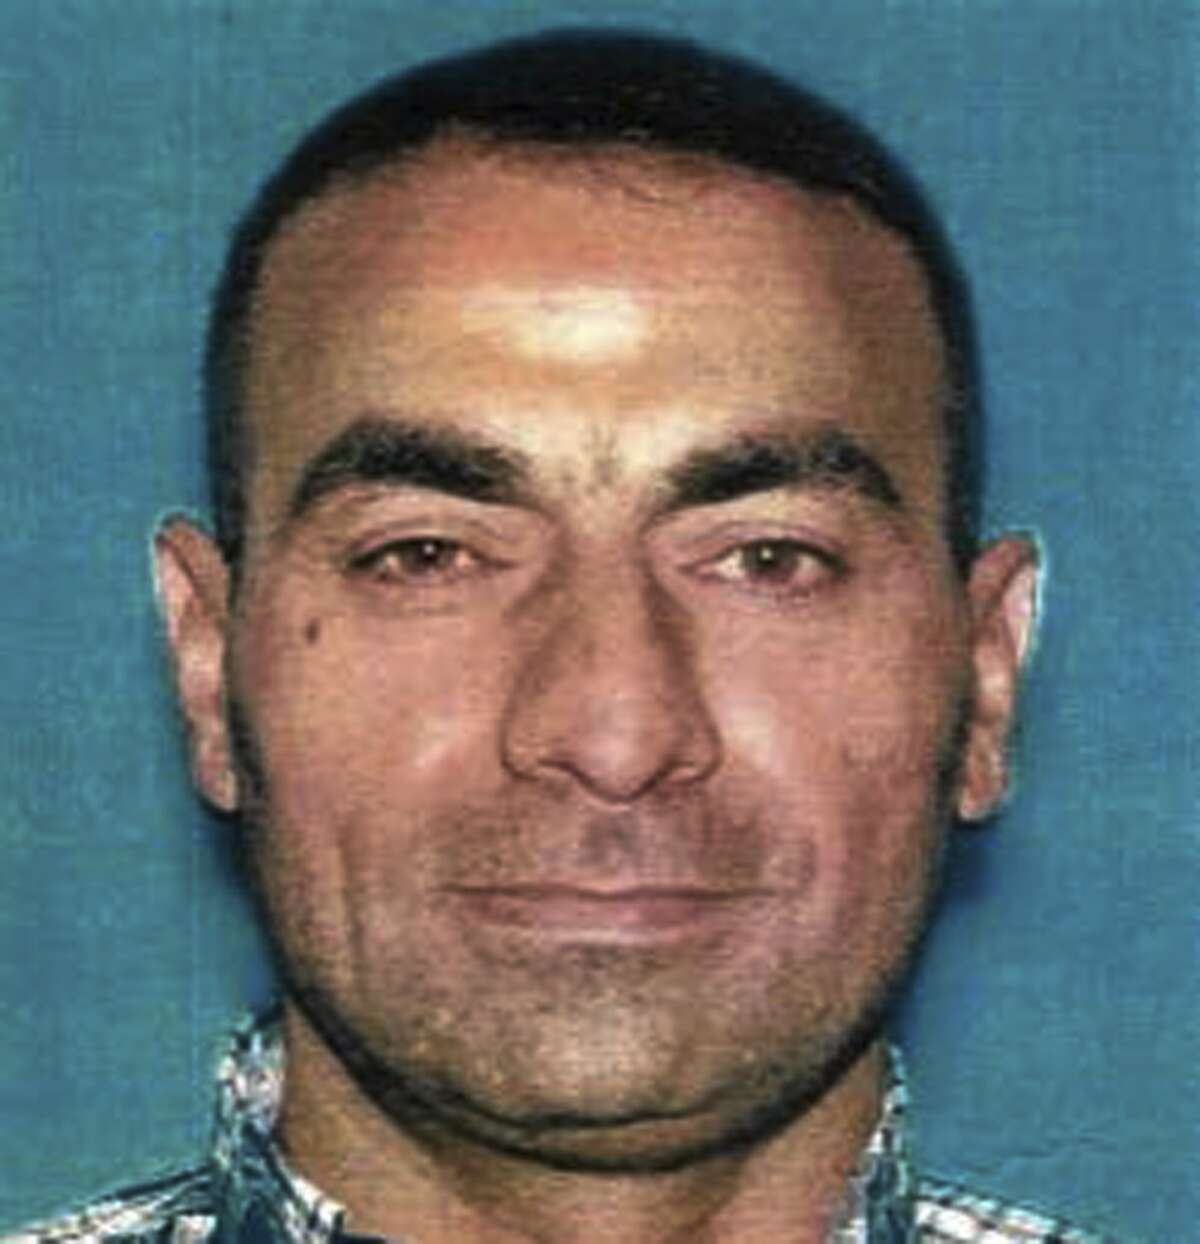 This undated photo provided by the U.S. Attorney's Office shows Omar Abdulsattar Ameen. The refugee from Iraq was arrested Wednesday, Aug. 15, 2018, in Northern California on a warrant alleging that he killed an Iraqi policeman while fighting for the Islamic State organization. (U.S. Attorney's Office via AP)